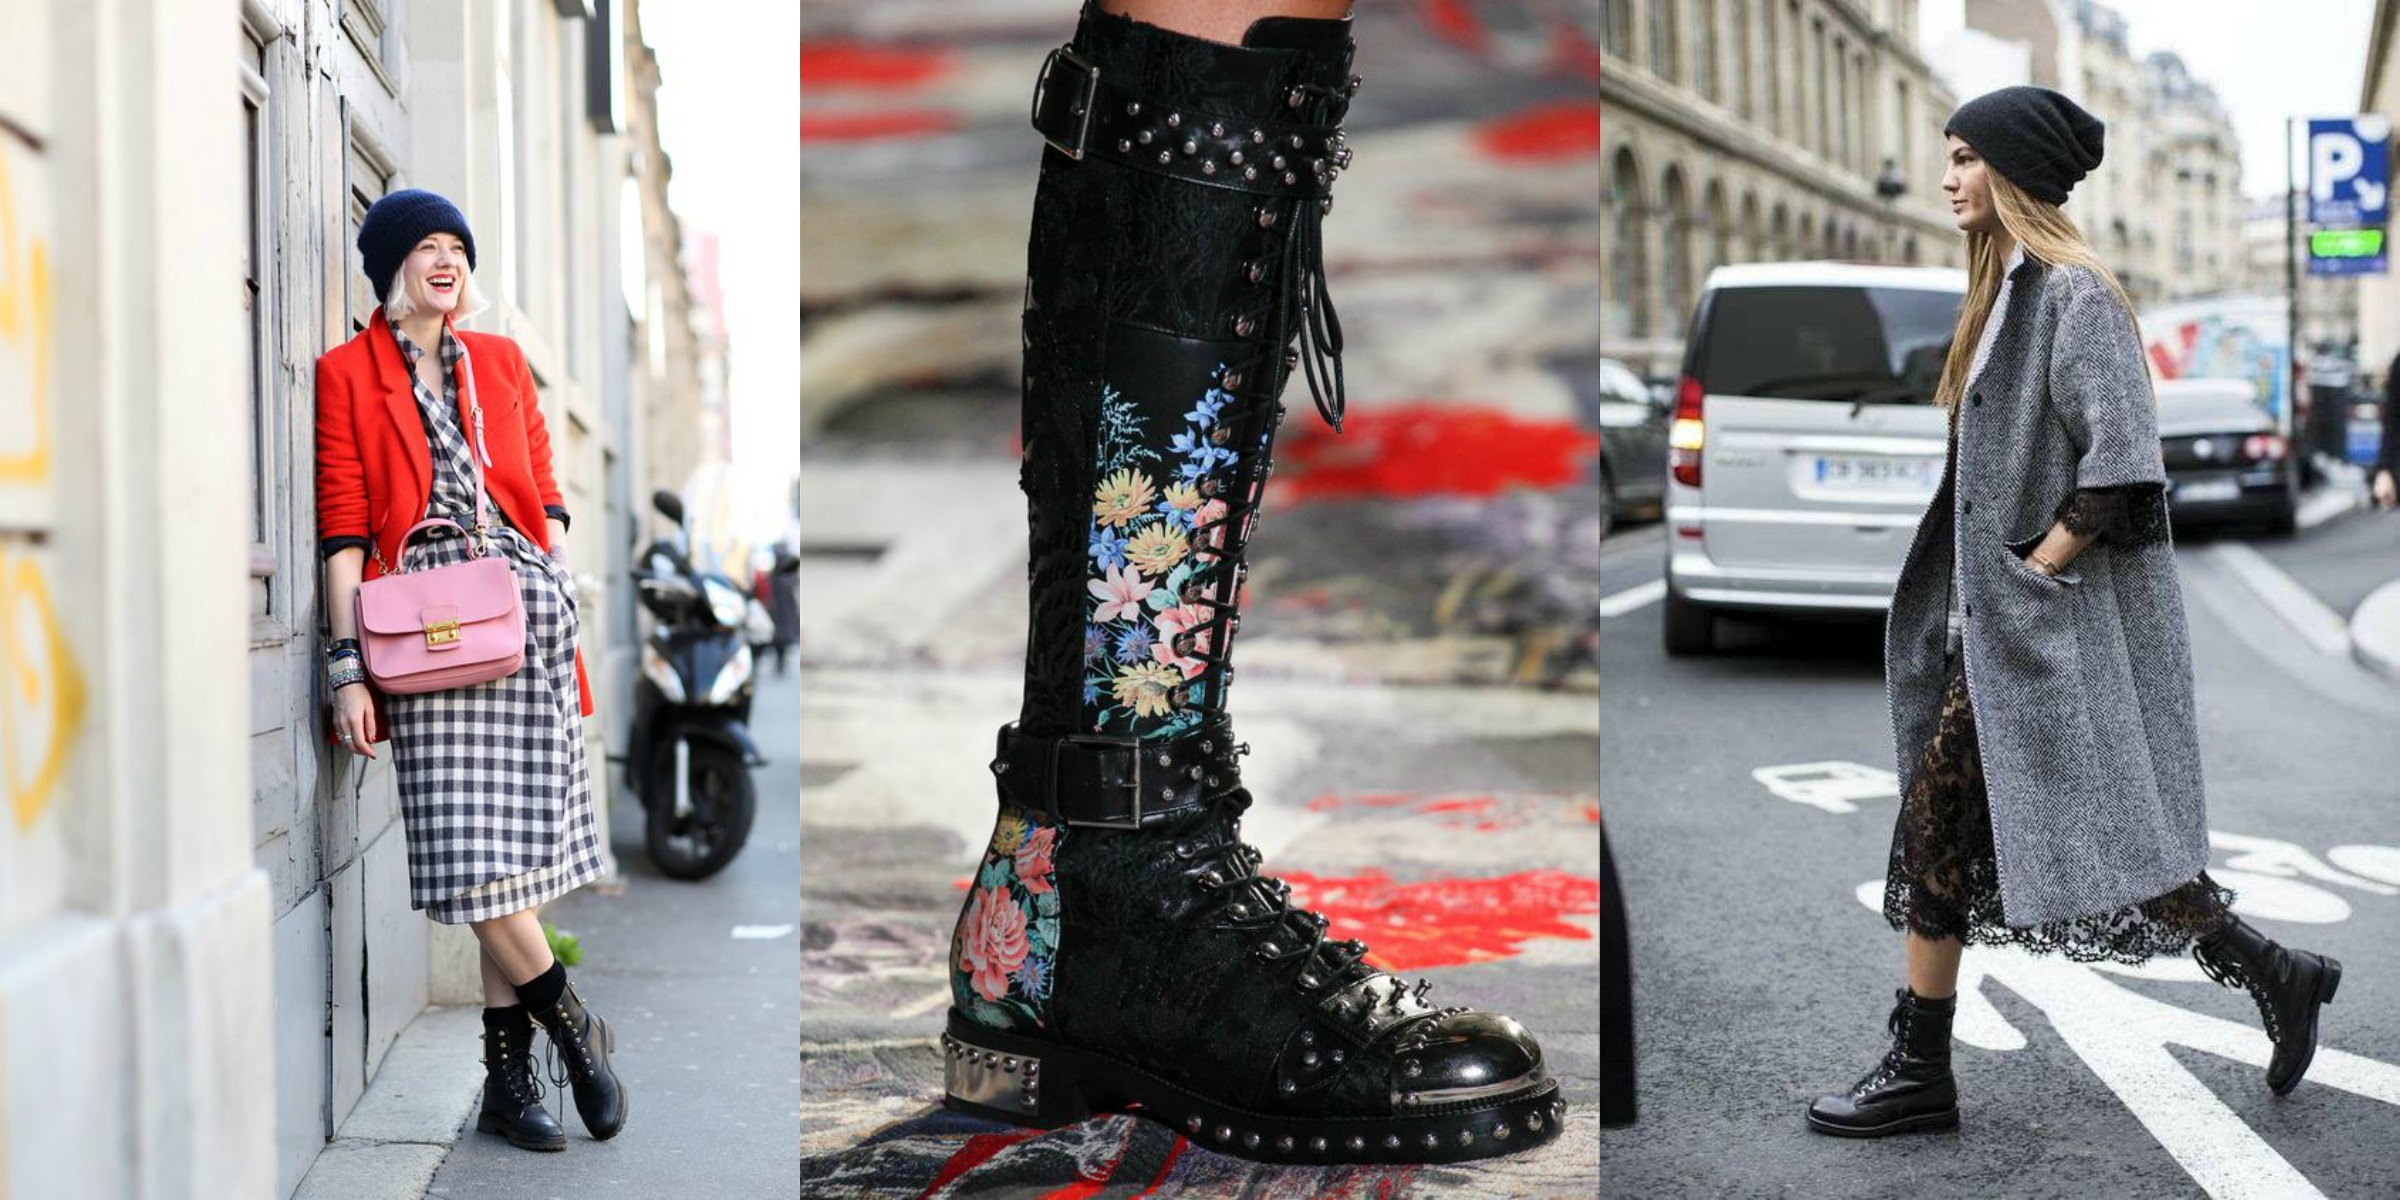 #ChiliFashion: le 10 scarpe di tendenza per l'Autunno Inverno 2017/2018, alessia milanese, thechilicool, fashion blog, fashion blogger